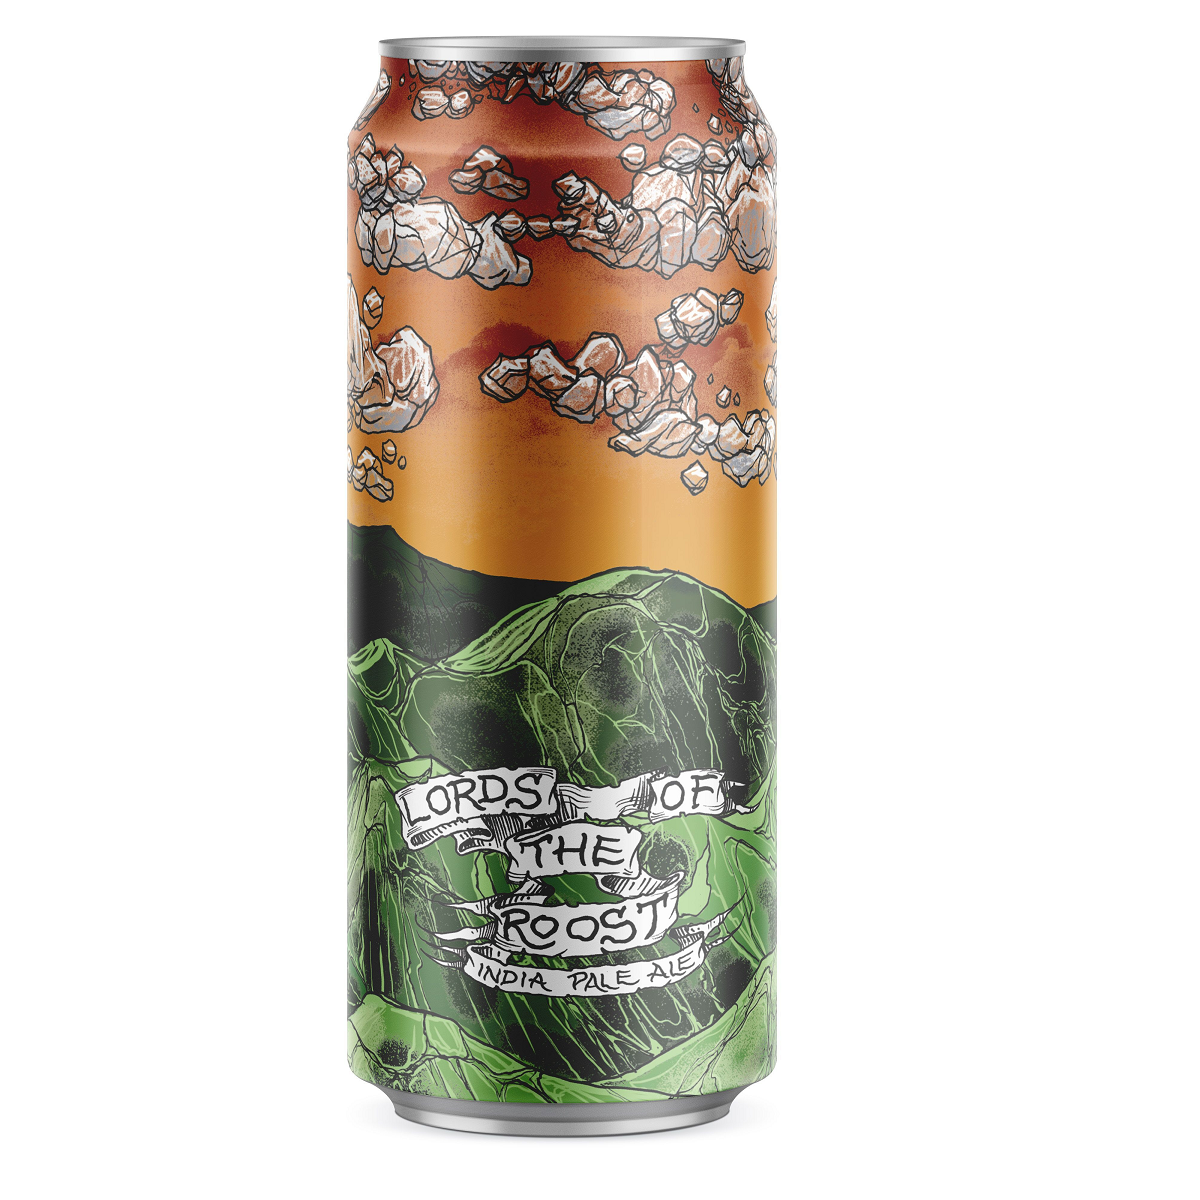 Burial x Altamont Beer Works 'Lords of the Roost' IPA 16oz Can